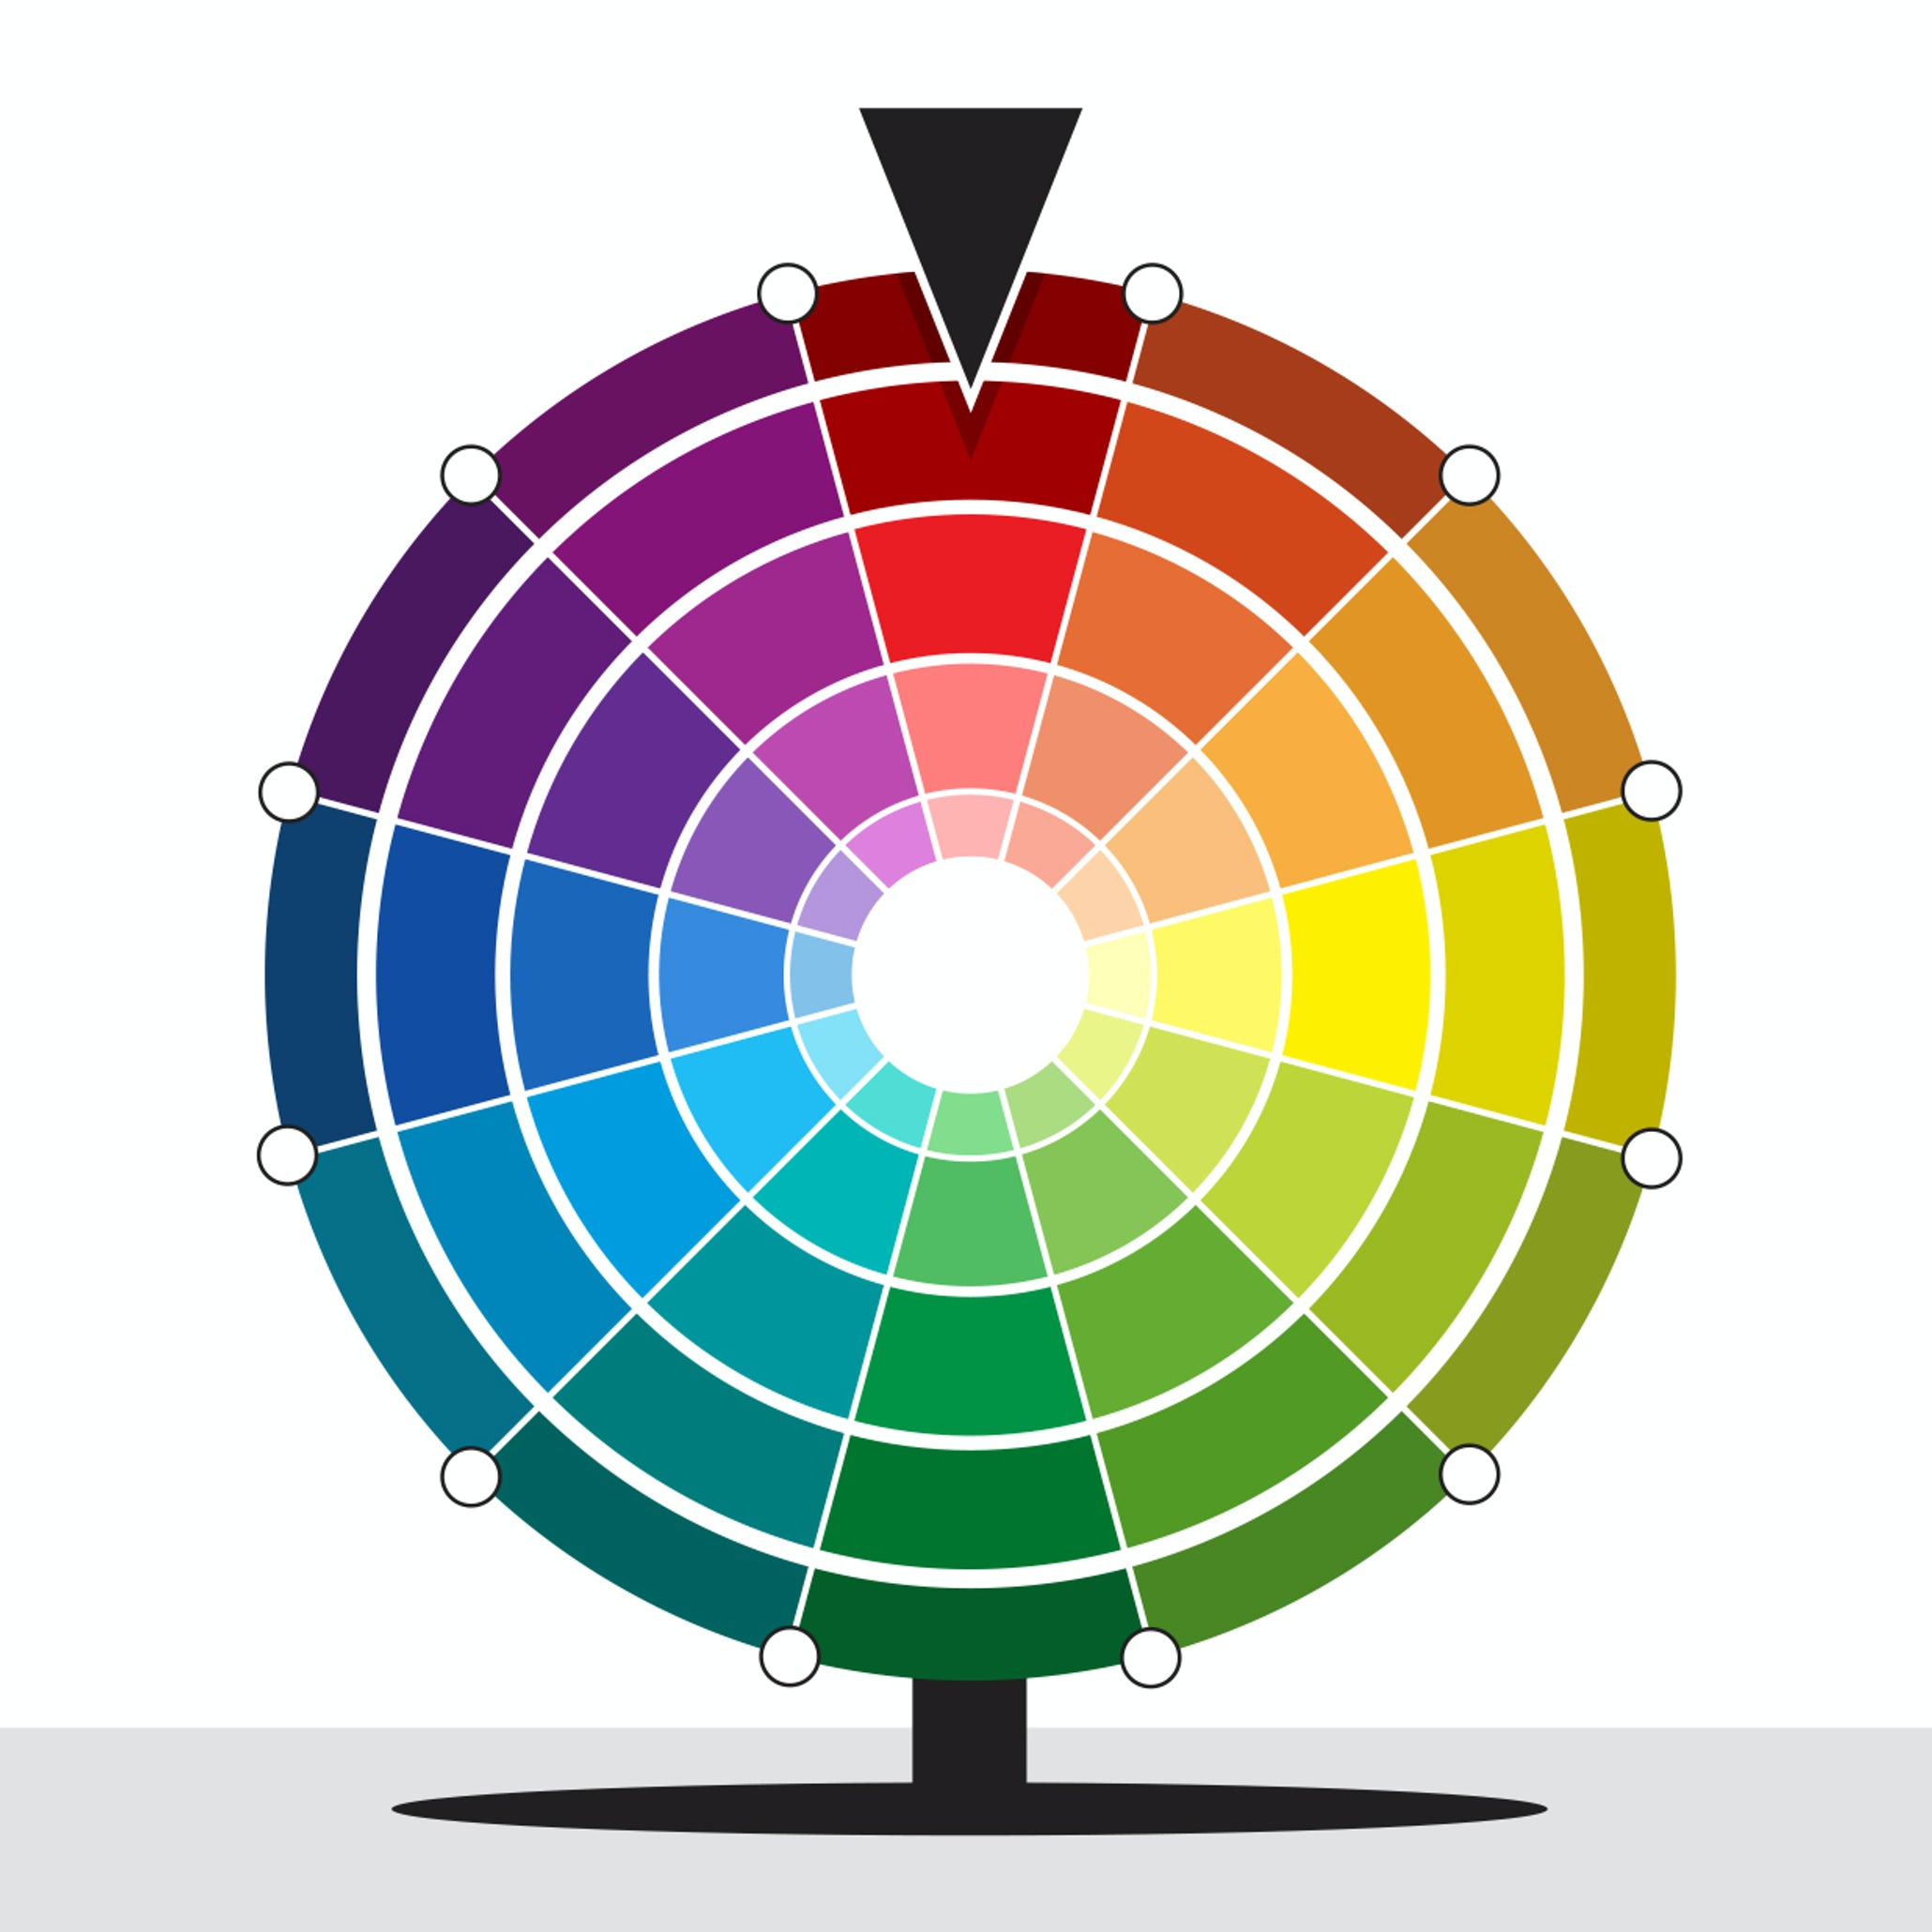 Branding colors: everything you need to choose your brand's perfect